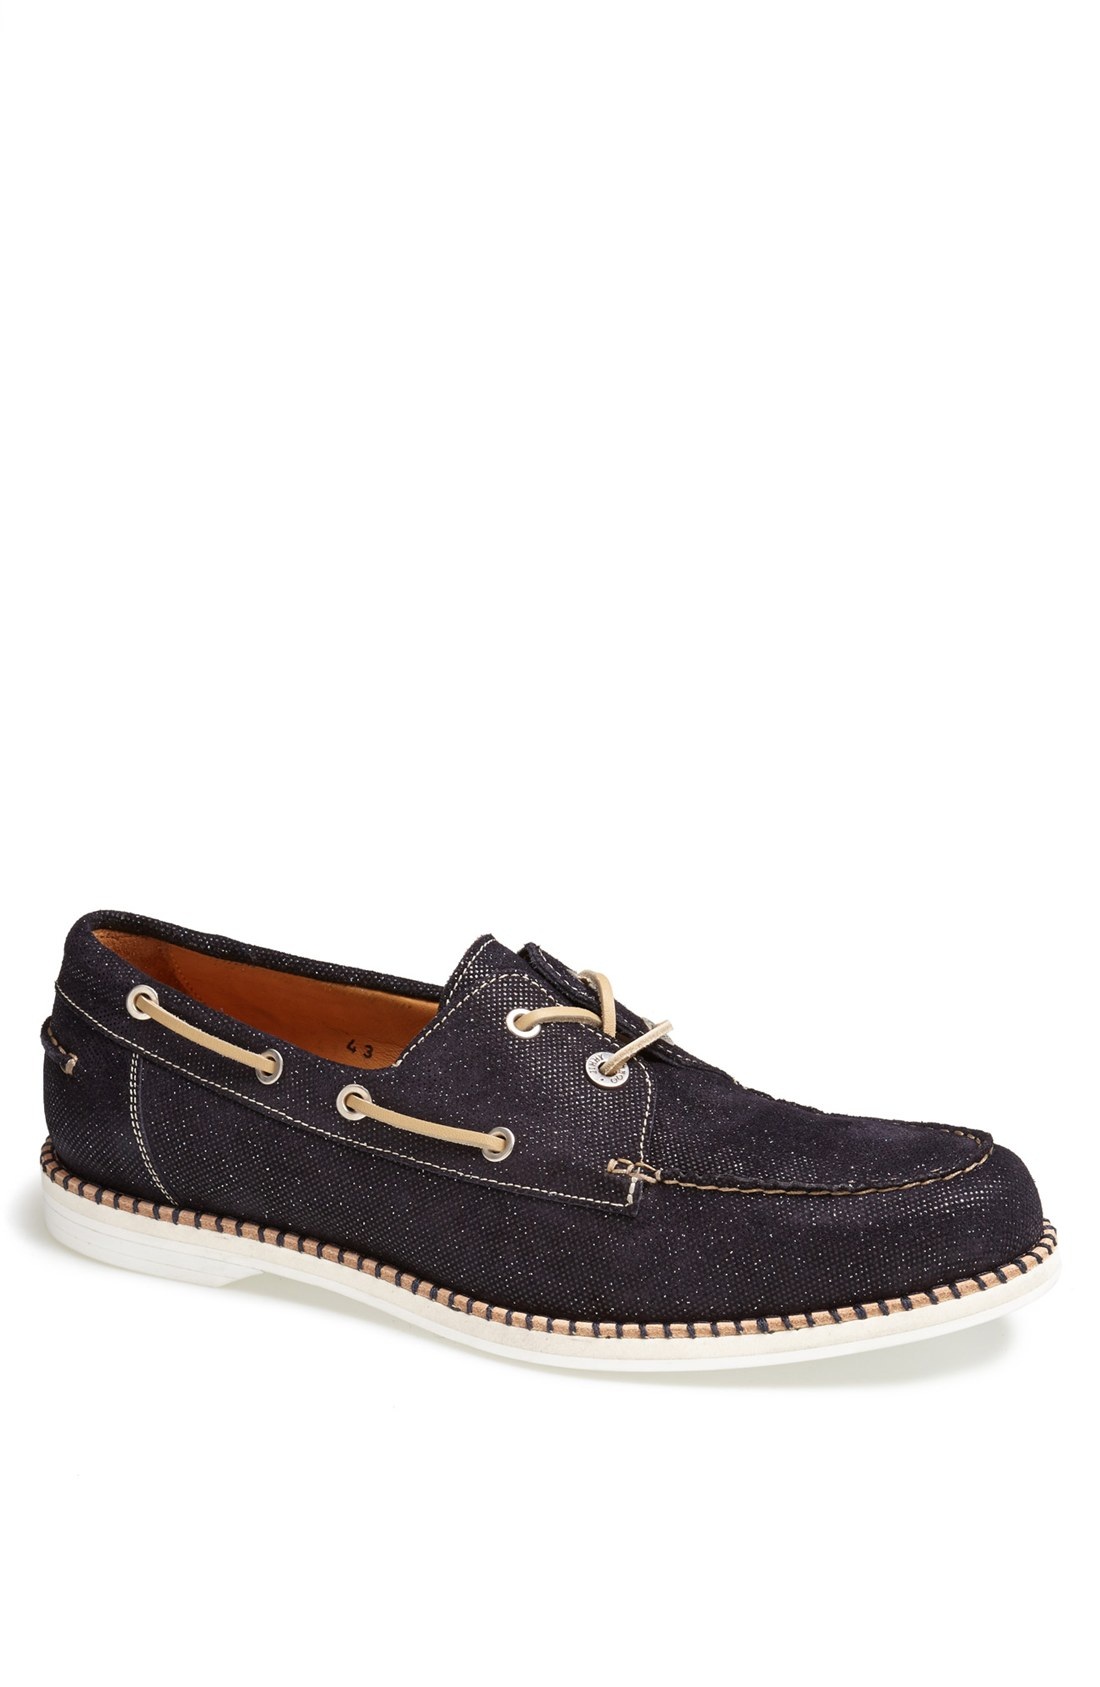 Jimmy Choo Women Boat Shoes